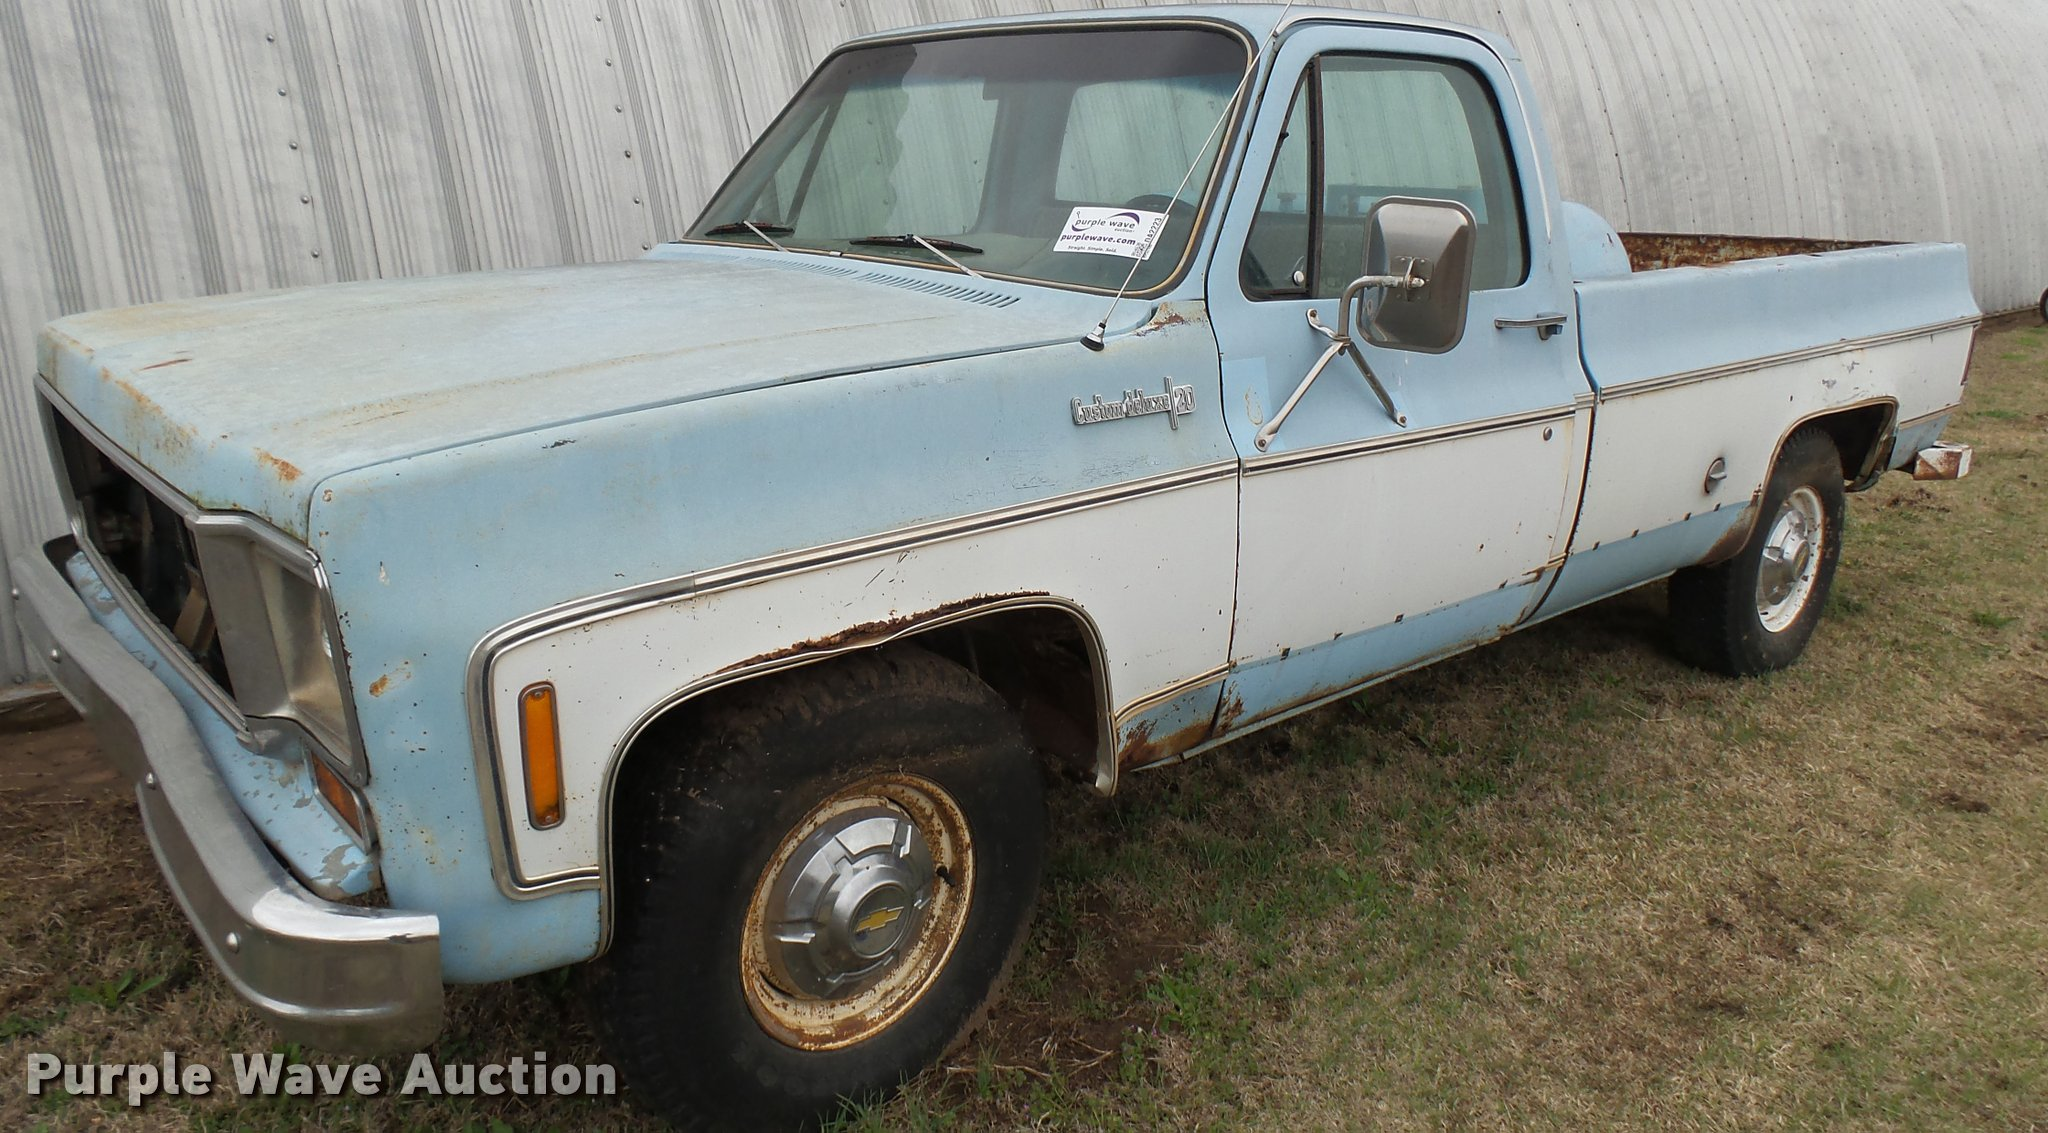 1974 Chevrolet Custom Deluxe 20 pickup truck | Item DA2223 |...